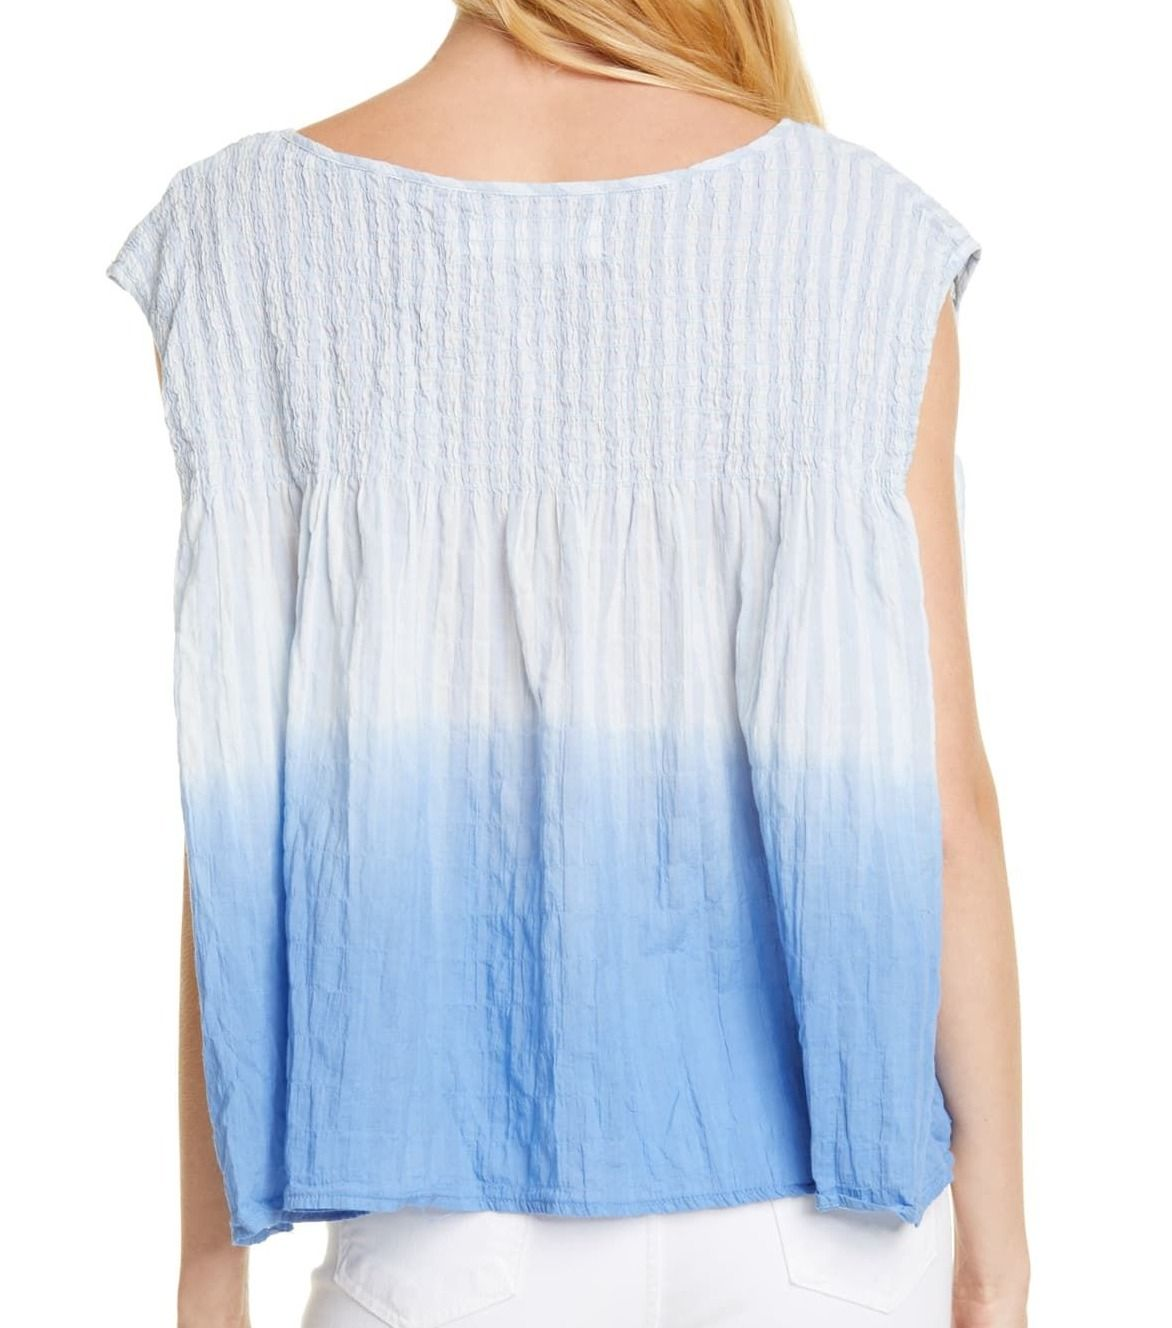 Free People Women's Boxy Blouse Blue Size XS Henley Shirred Ombre